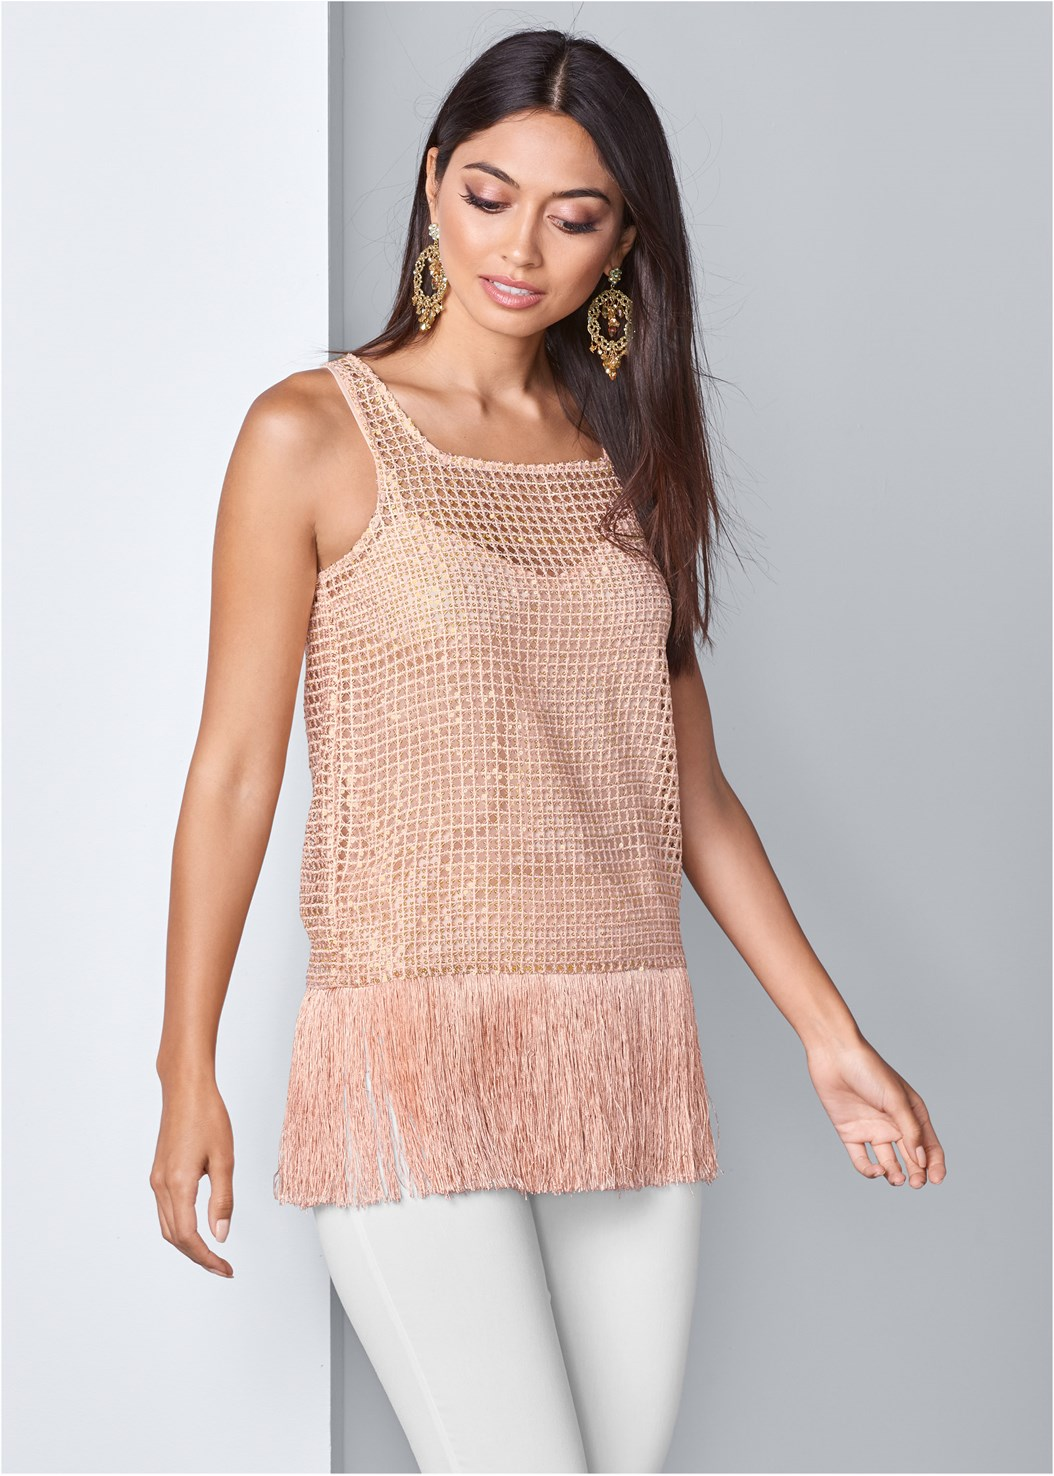 Fringe Detail Sequin Top,Mid Rise Full Length Slimming Stretch Jeggings,Studded Strappy Heels